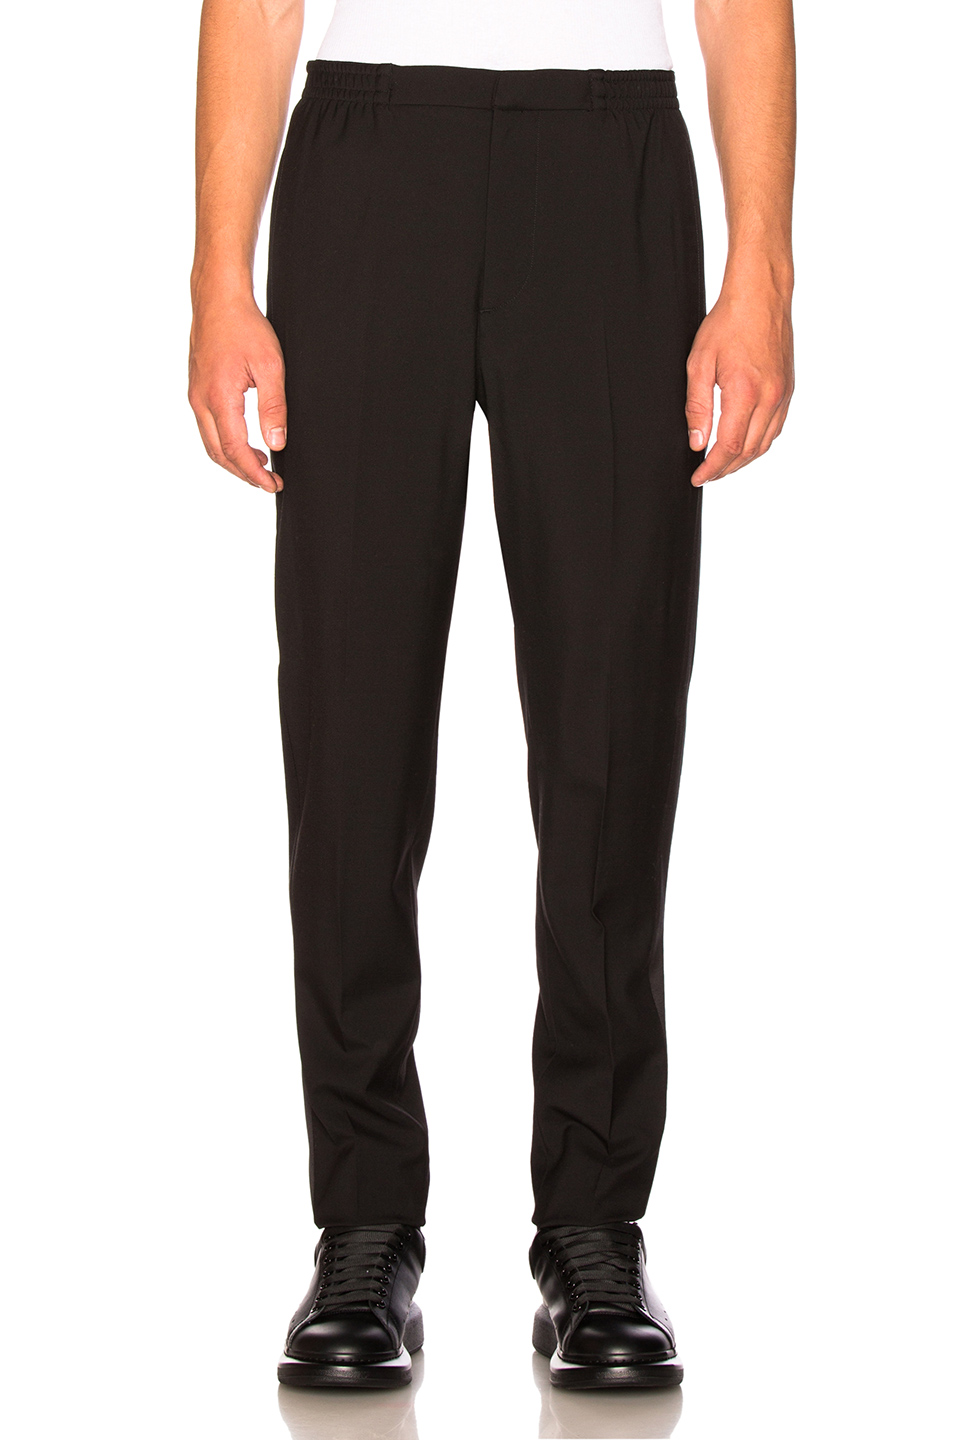 Alexander McQueen Satin Sideband Pants in Black